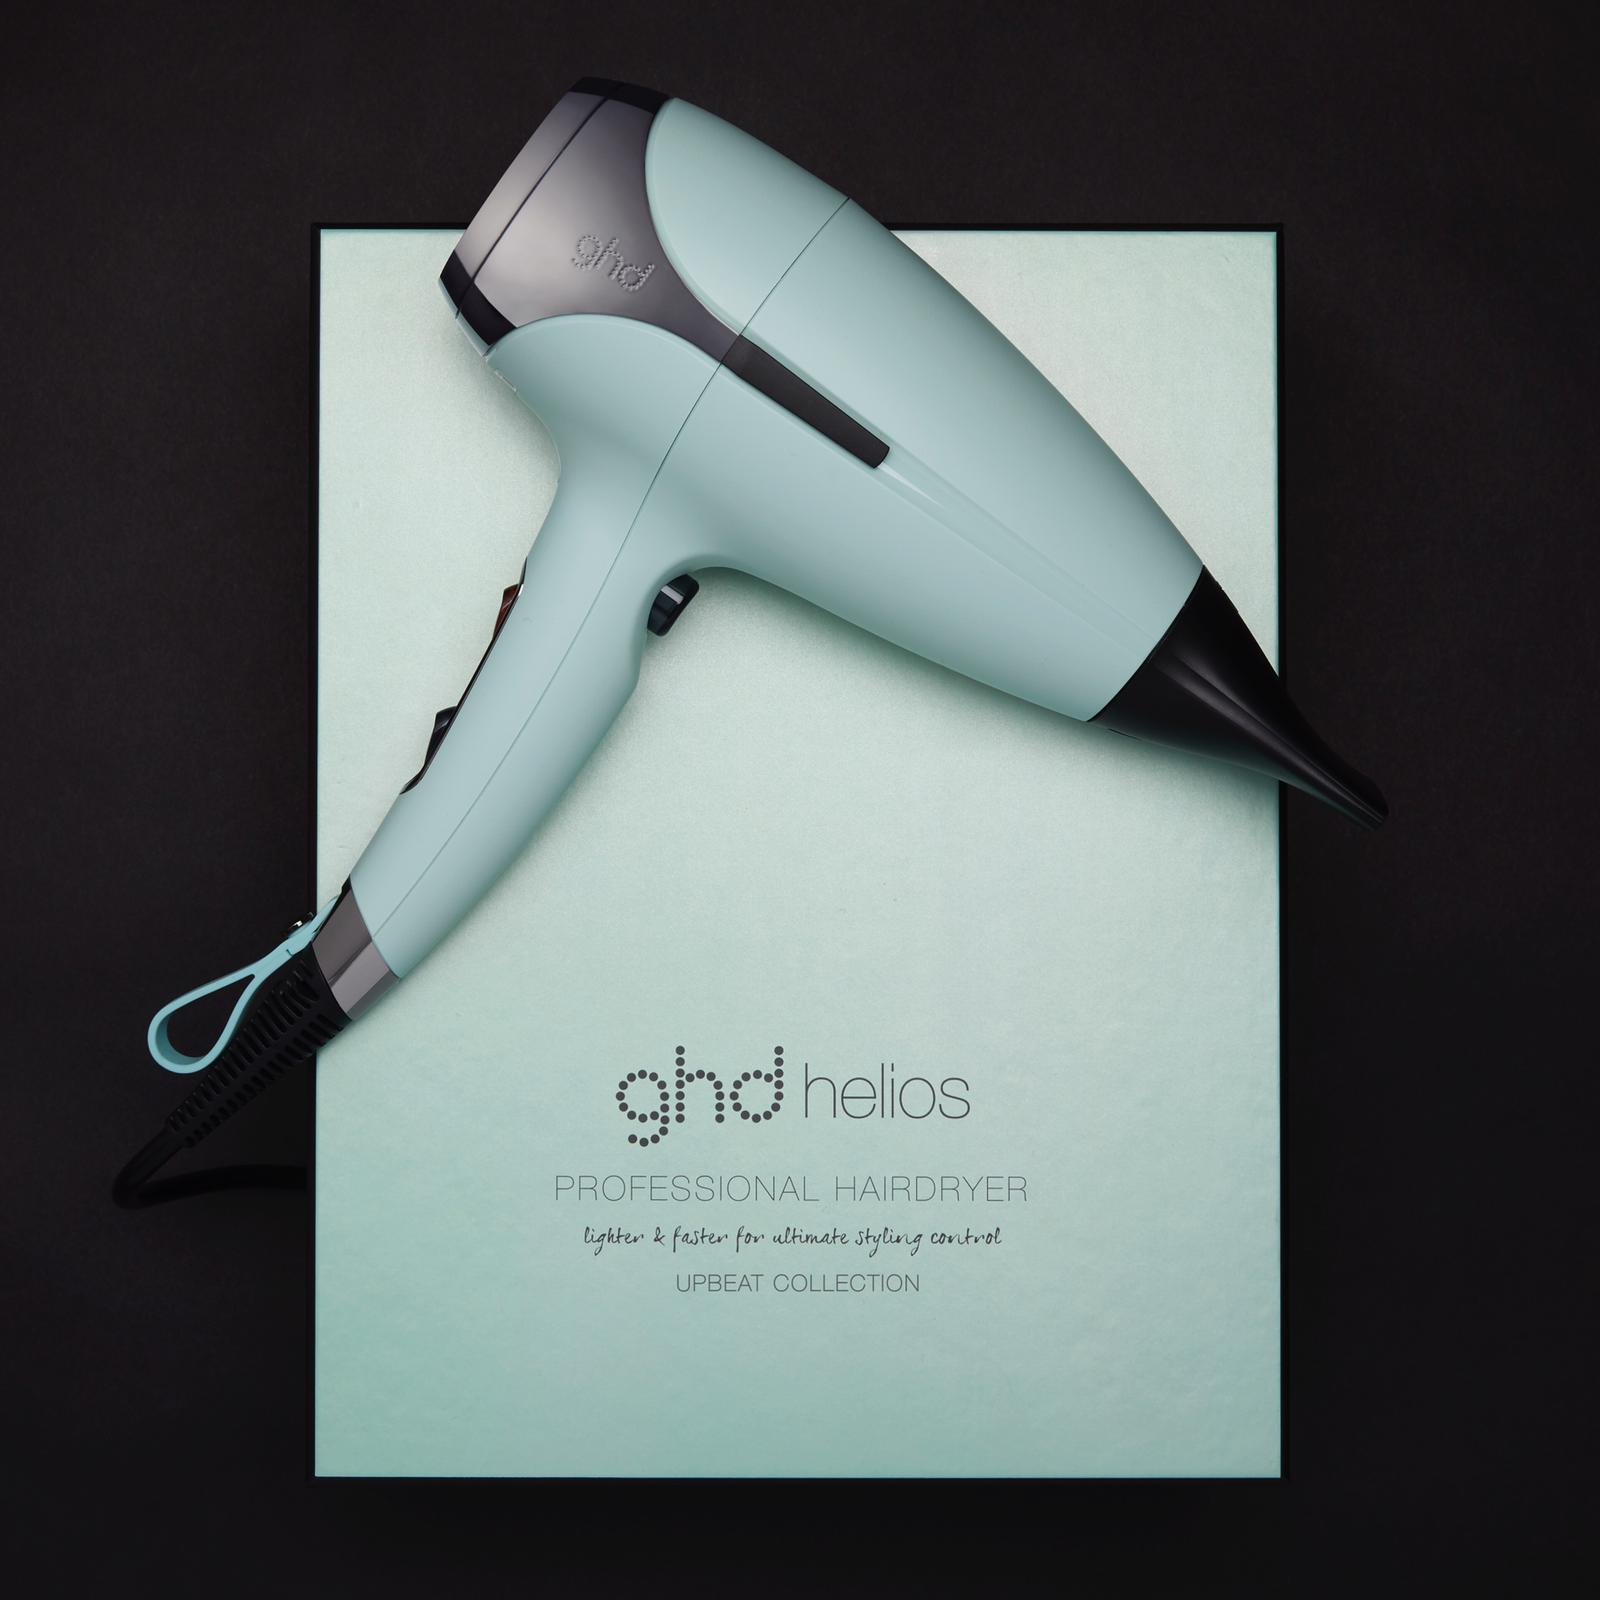 Discover The NEW ghd Upbeat Collection